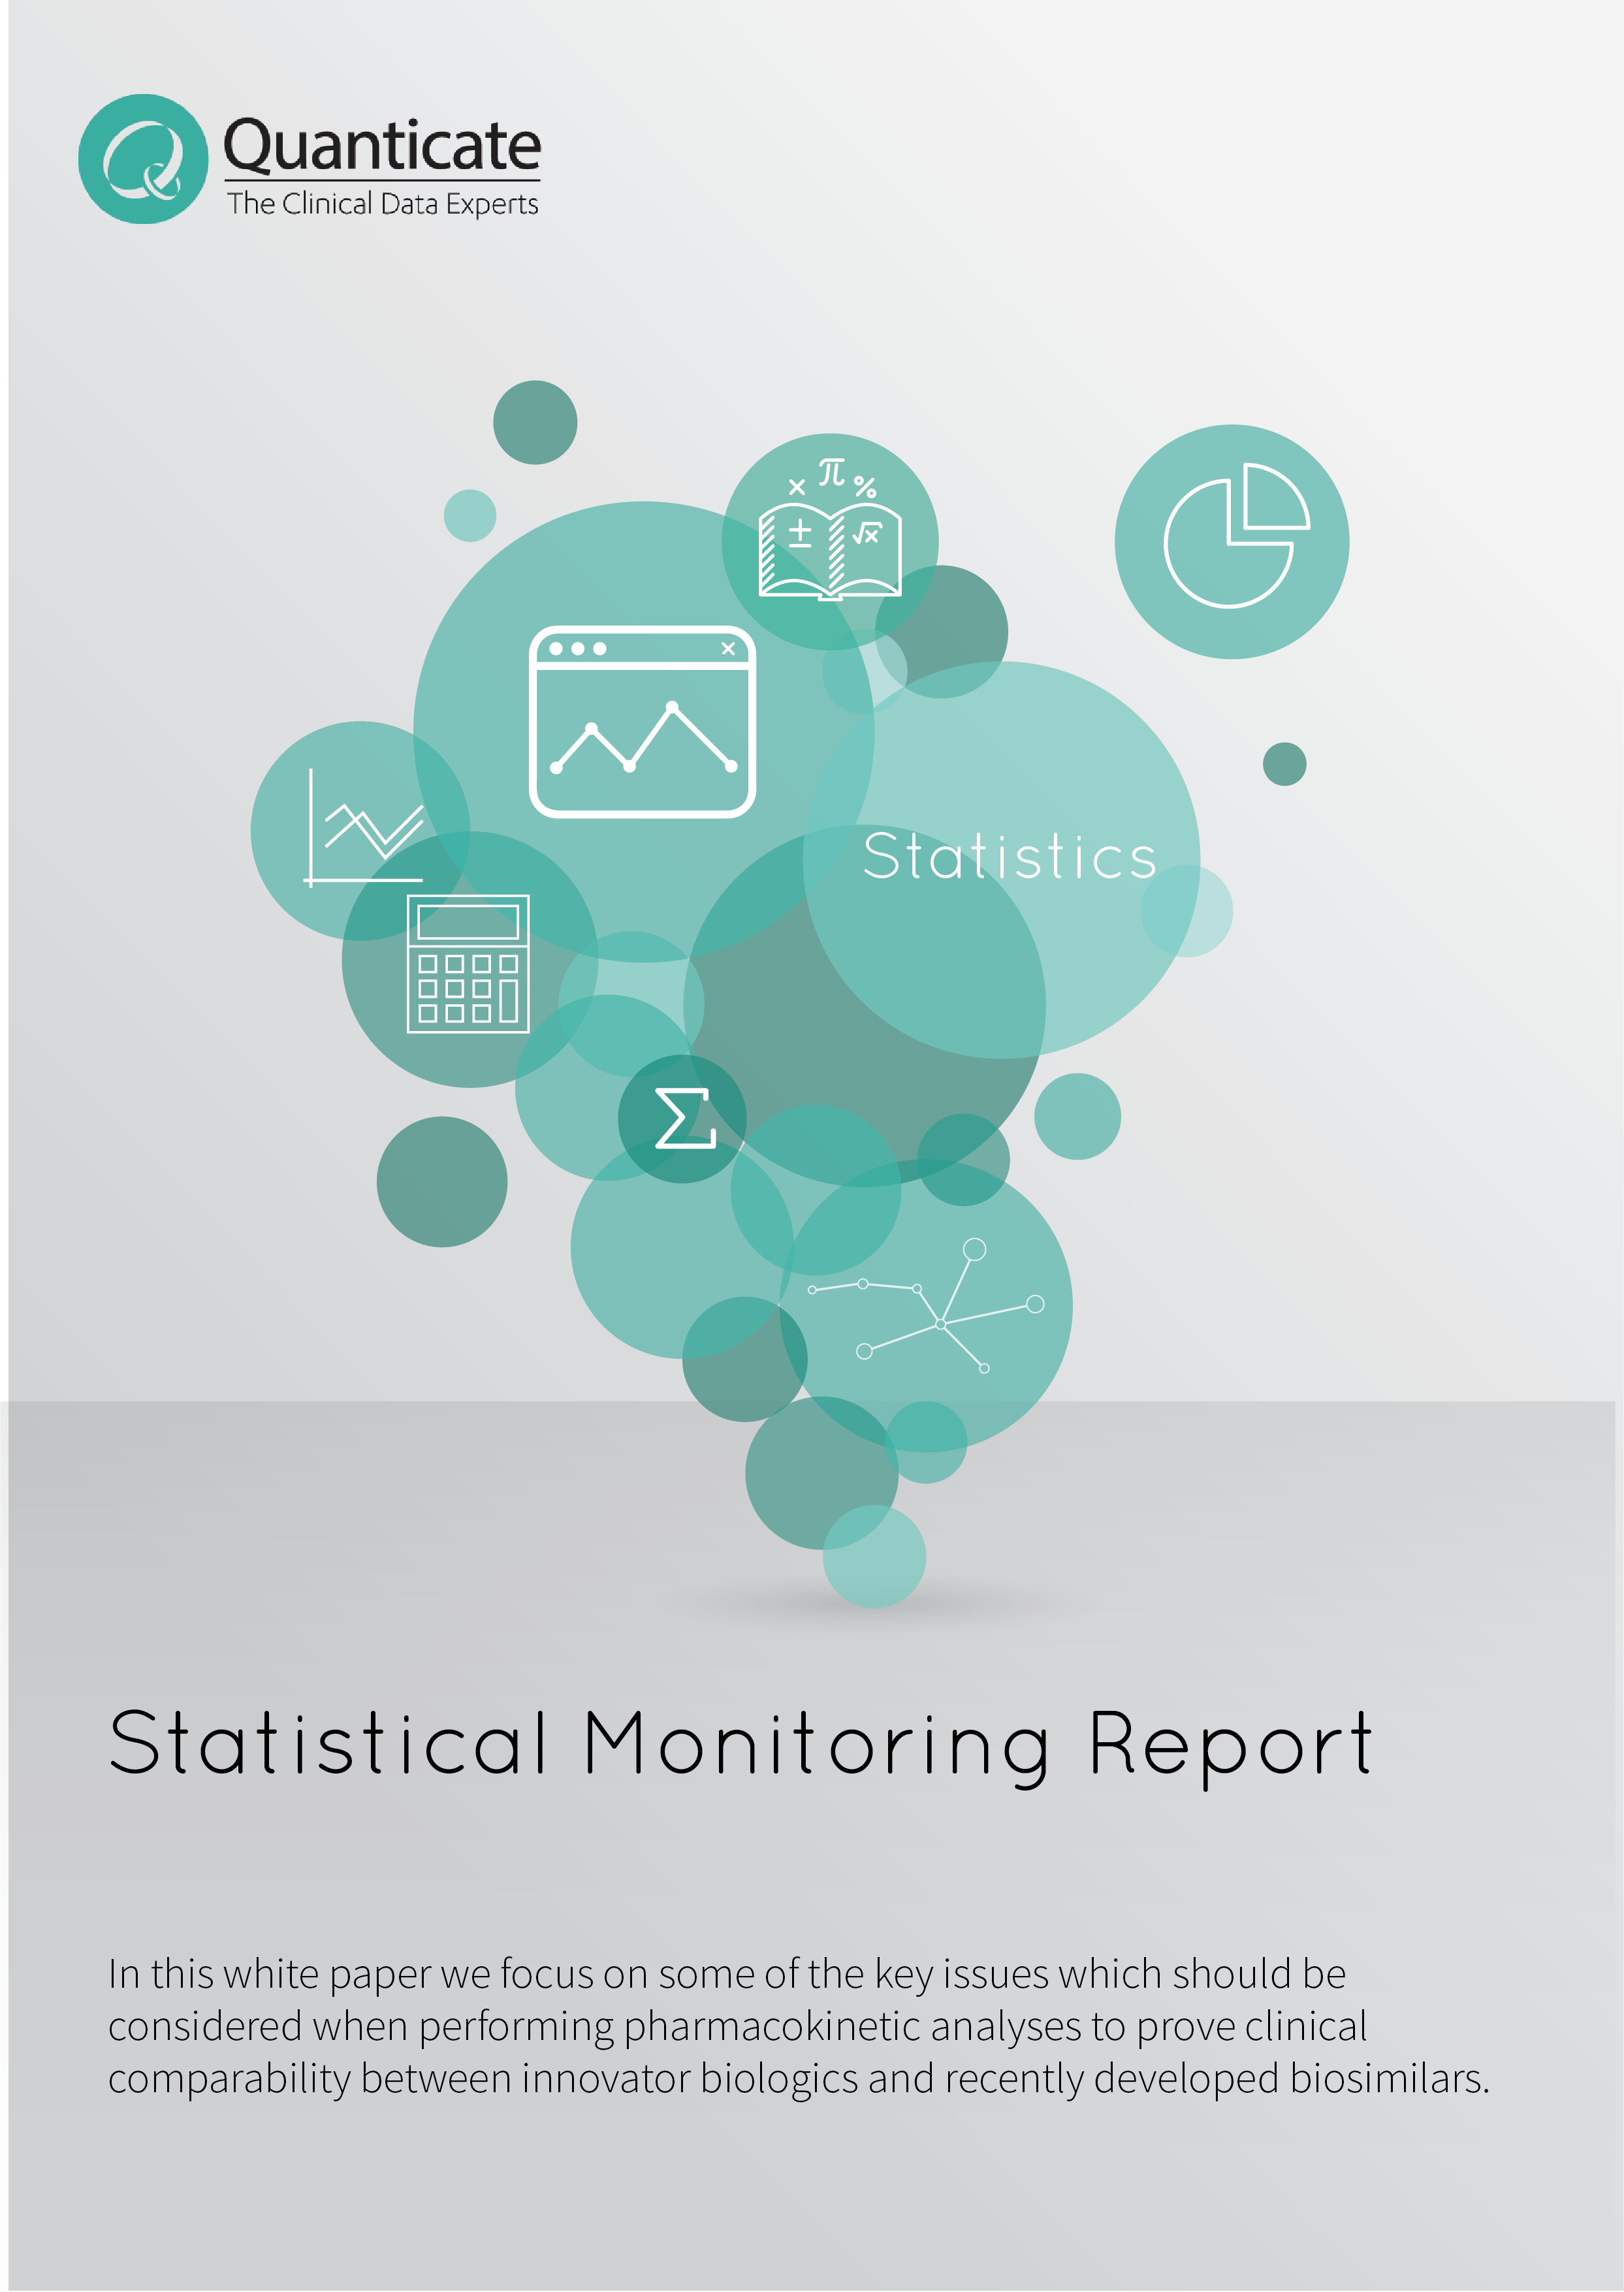 Statistical Monitoring